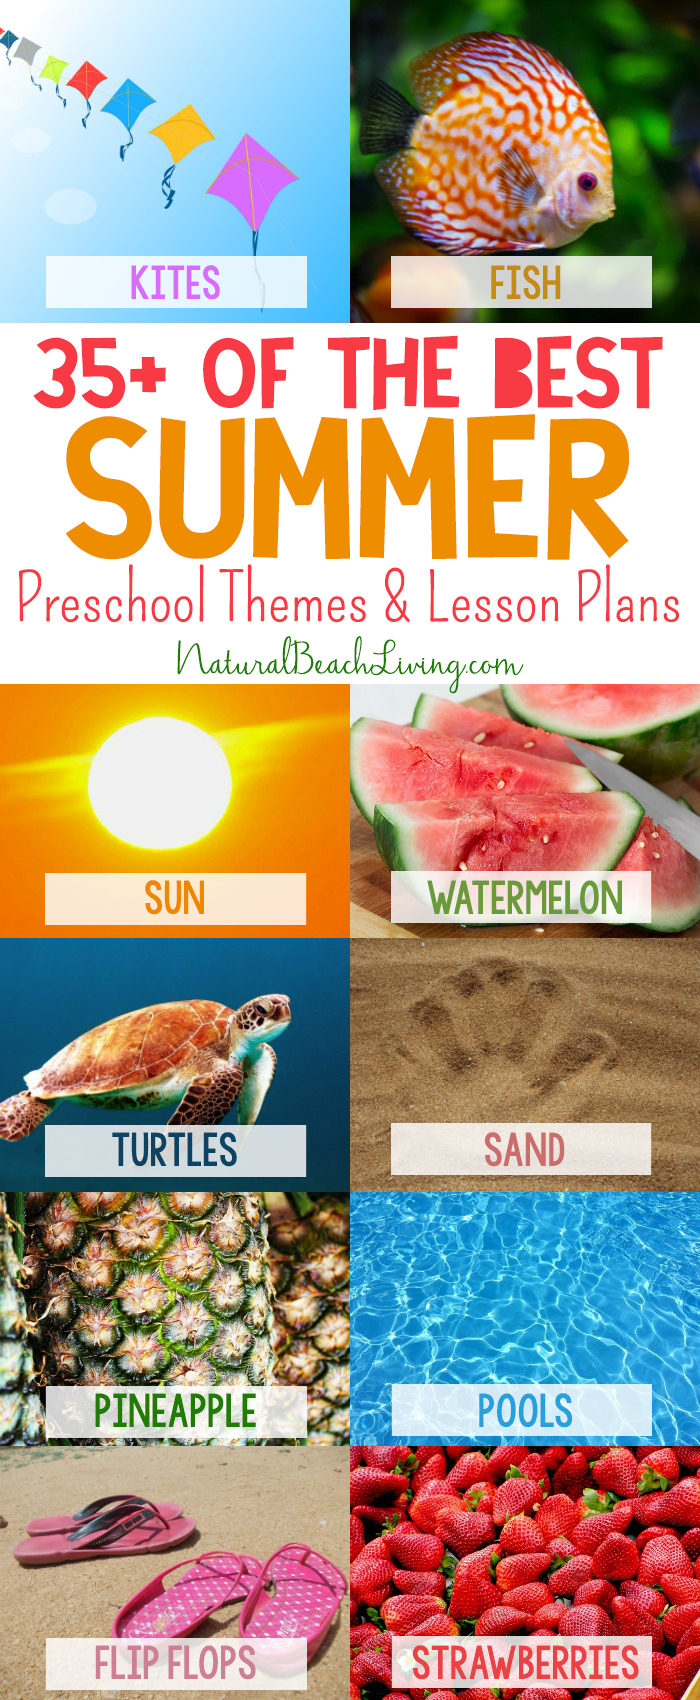 summer preschool ideas 200 of the best preschool themes and lesson plans 498